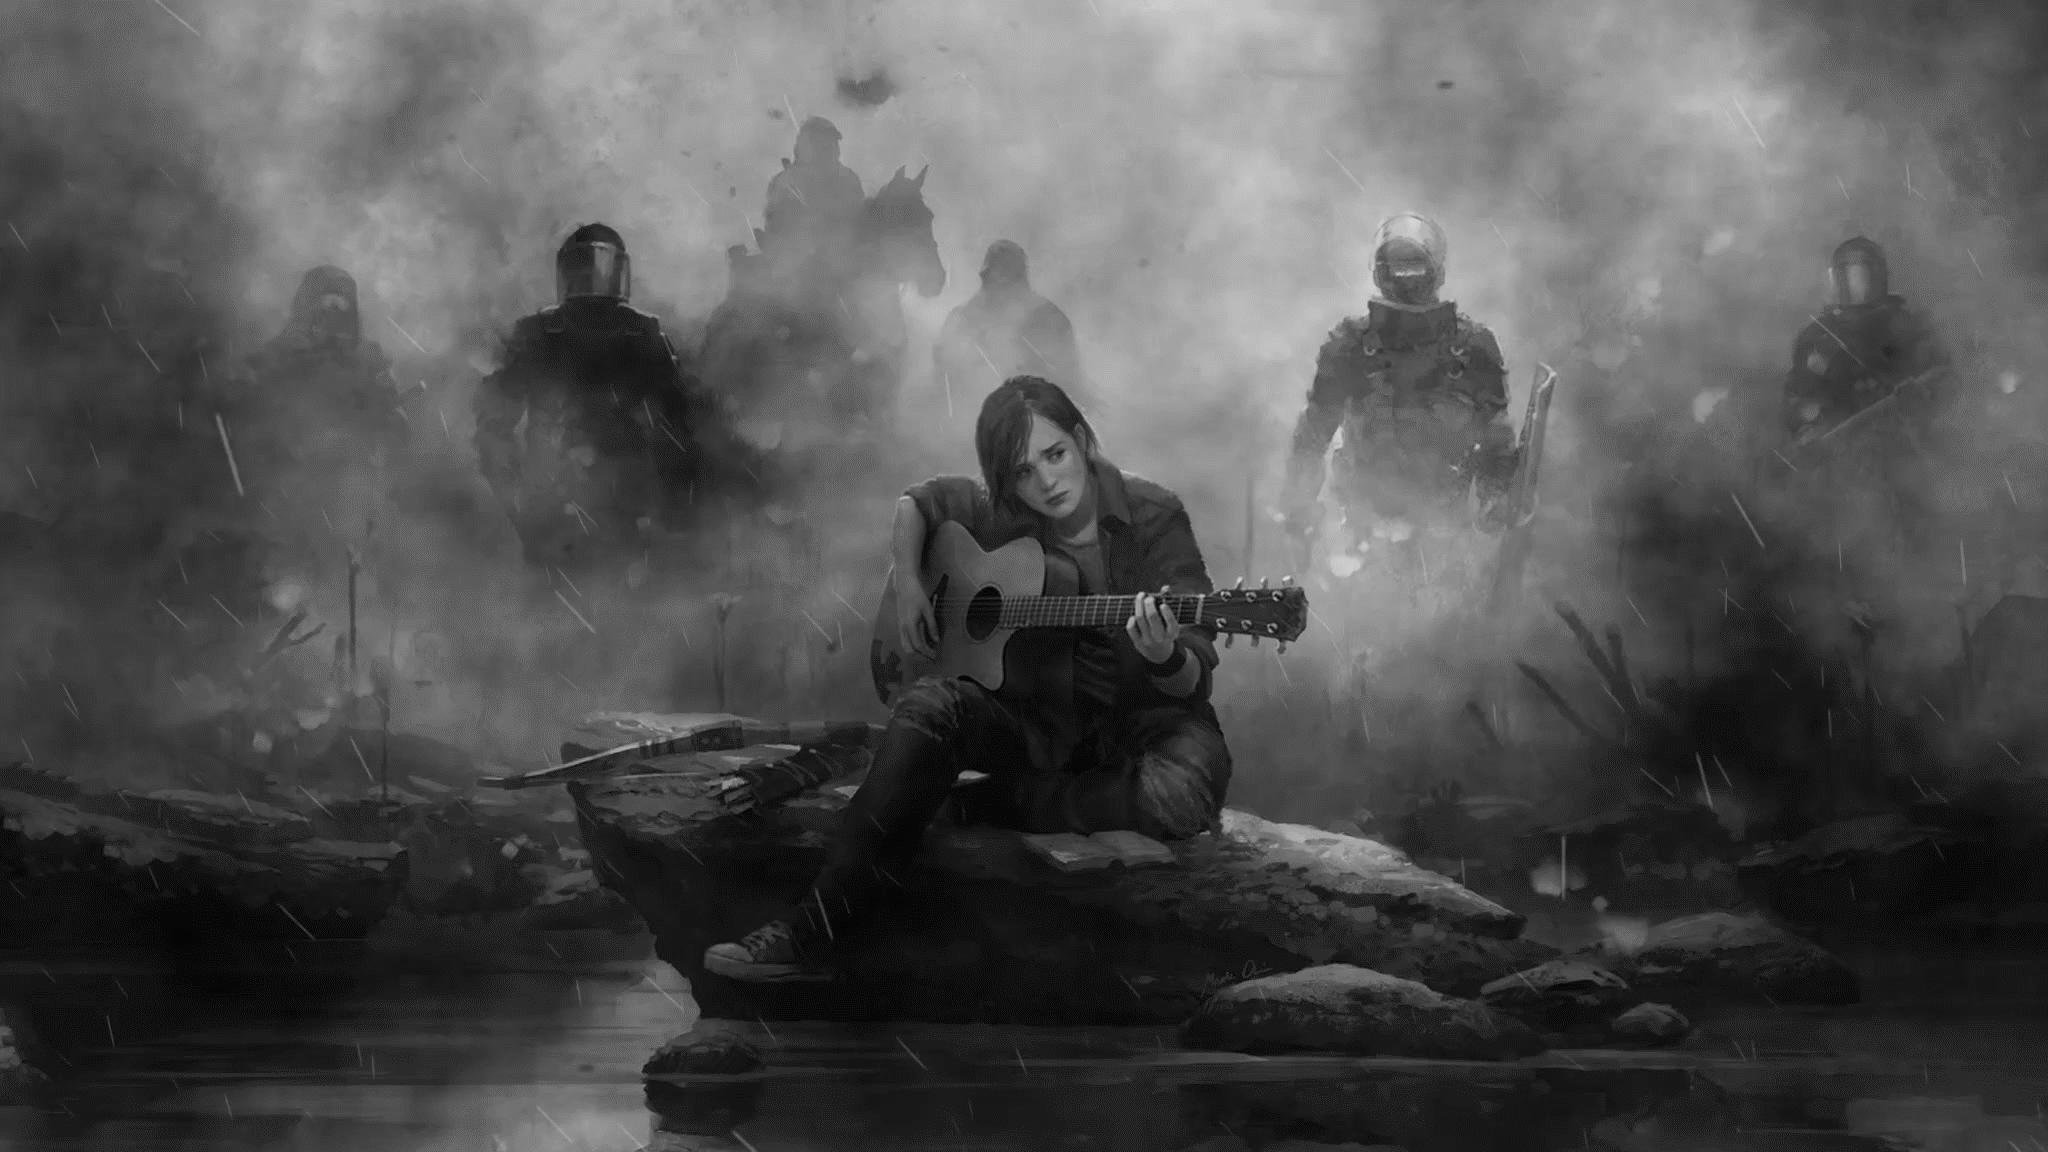 2048x1152 Ellie The Last Of Us Part 2 Guitar Monochrome